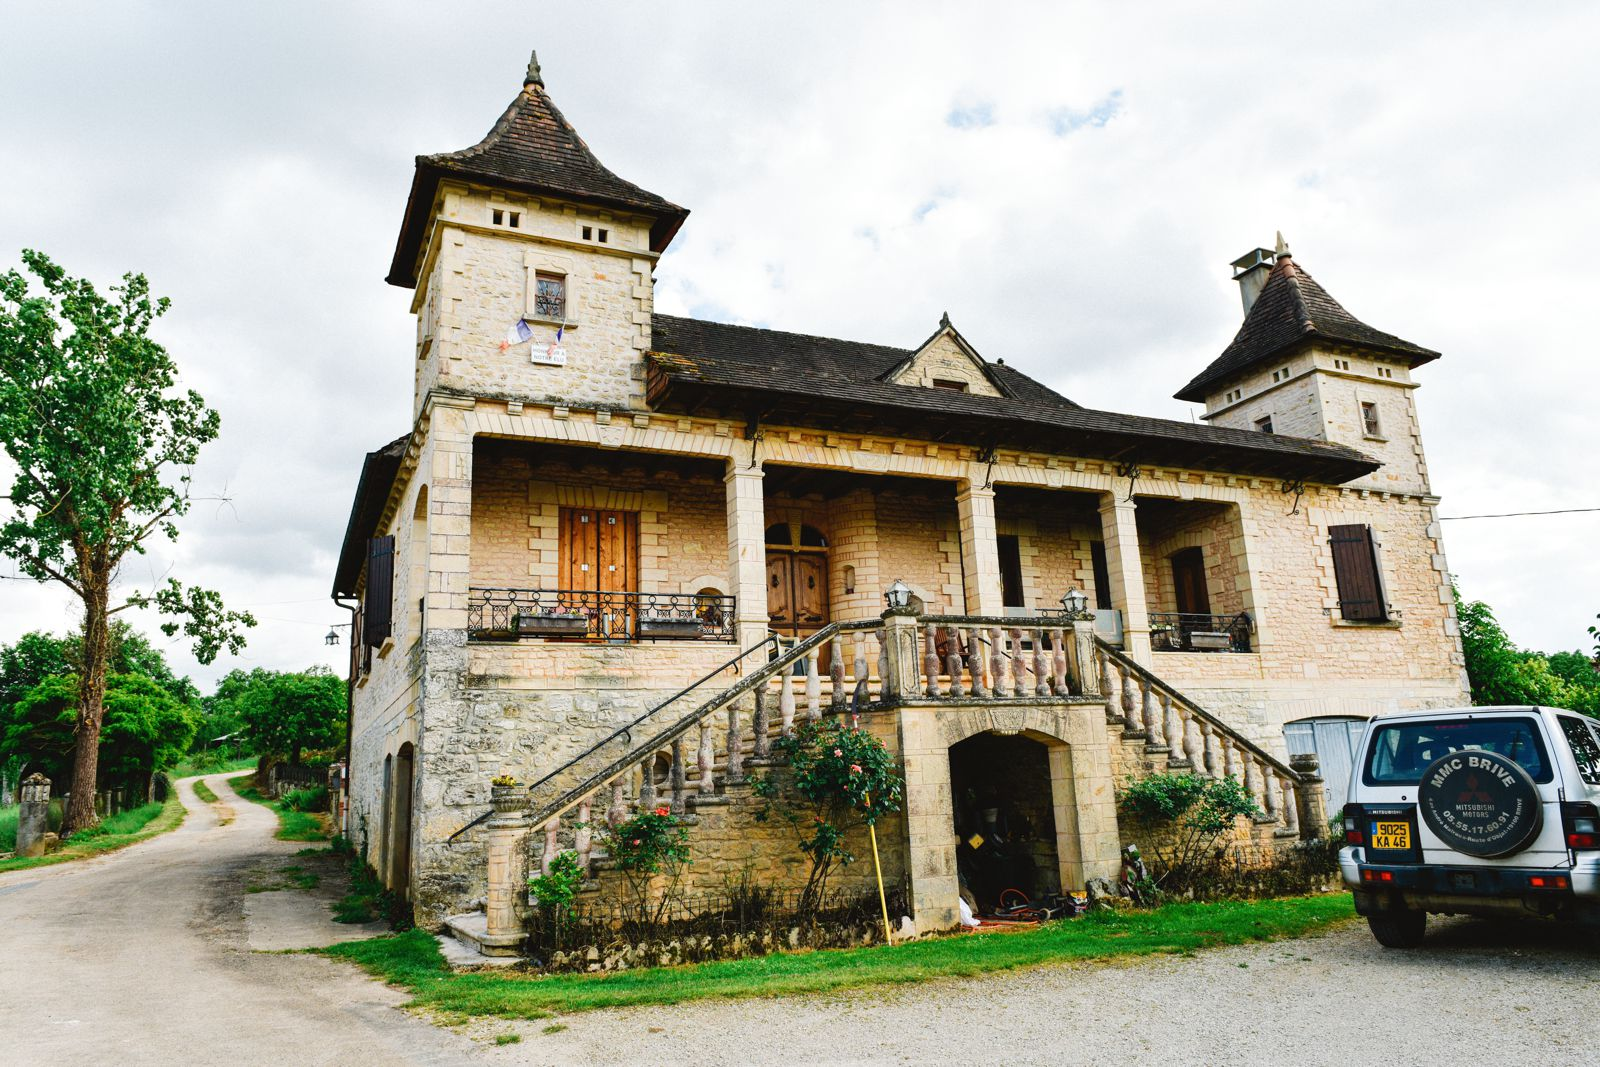 Truffle-Hunting, Chateau-Living And Wine-Tasting In the French Dordogne Valley (10)